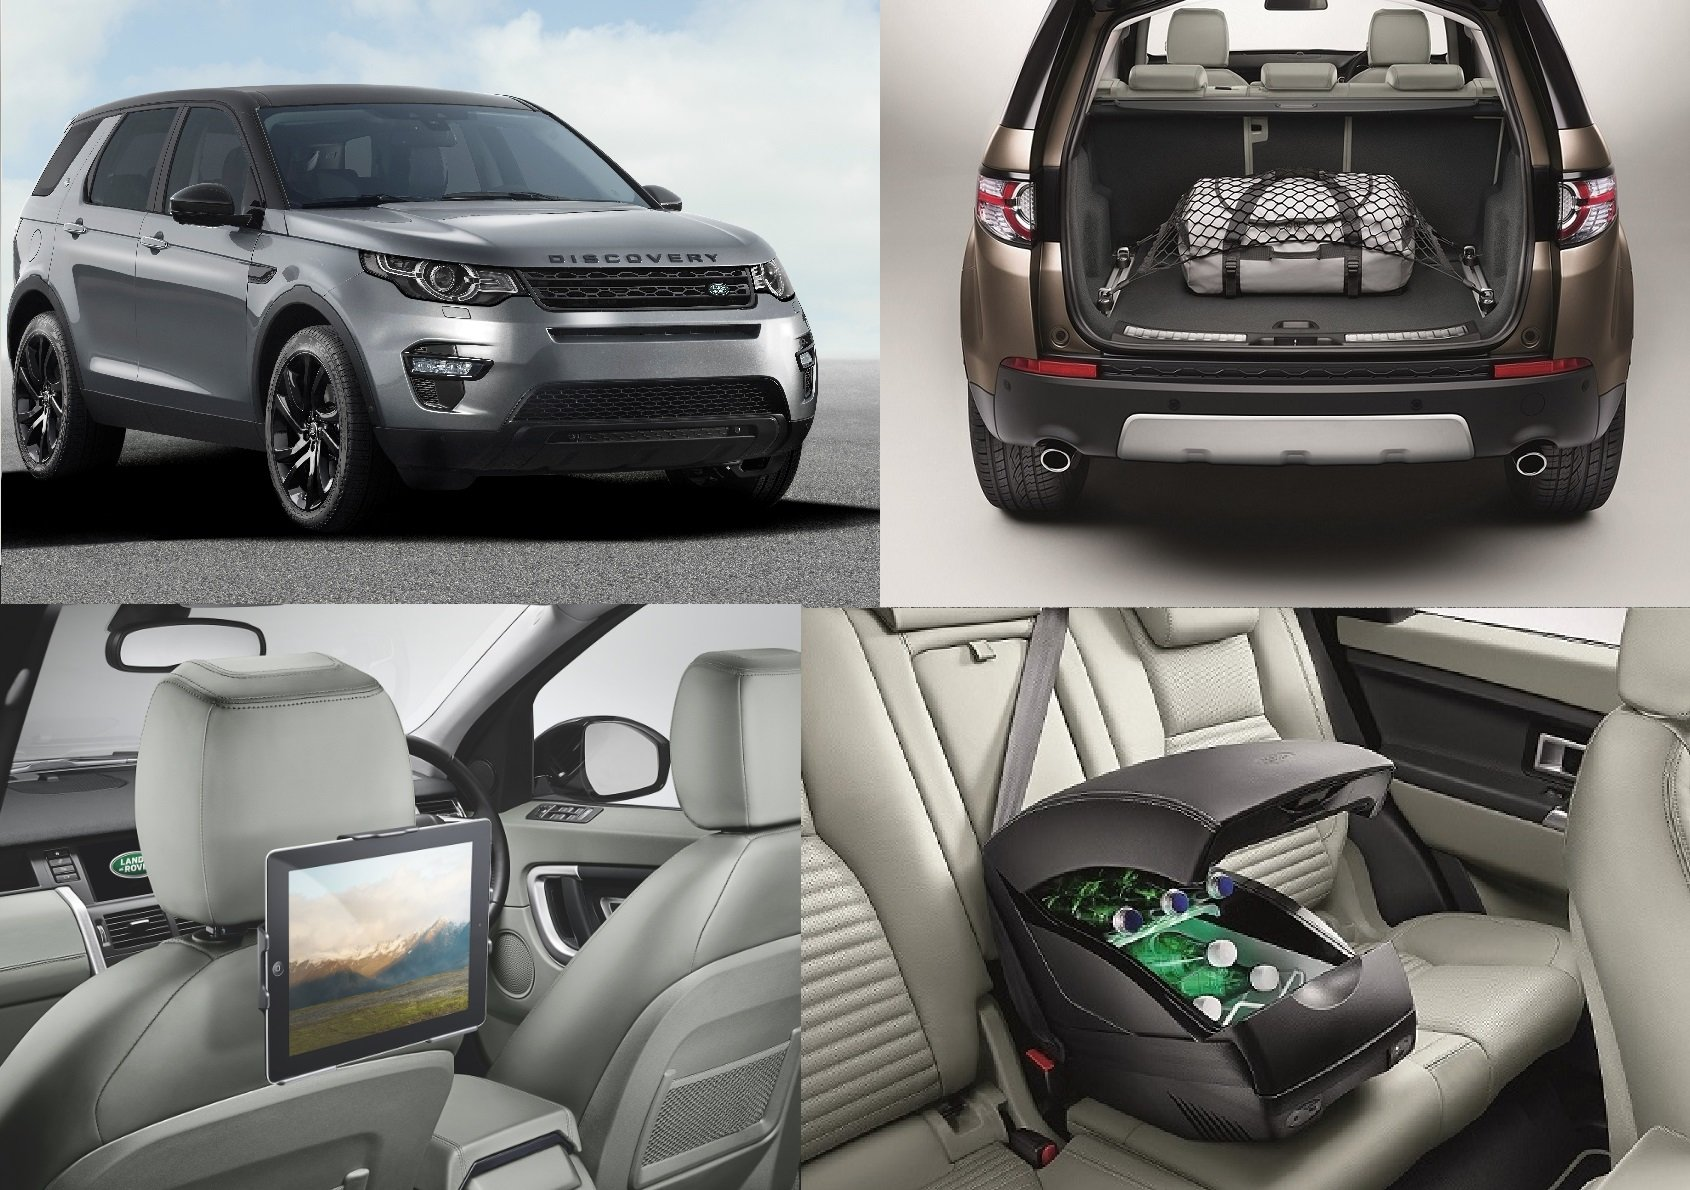 Finding the Right Accessories for Your Land Rover Discovery